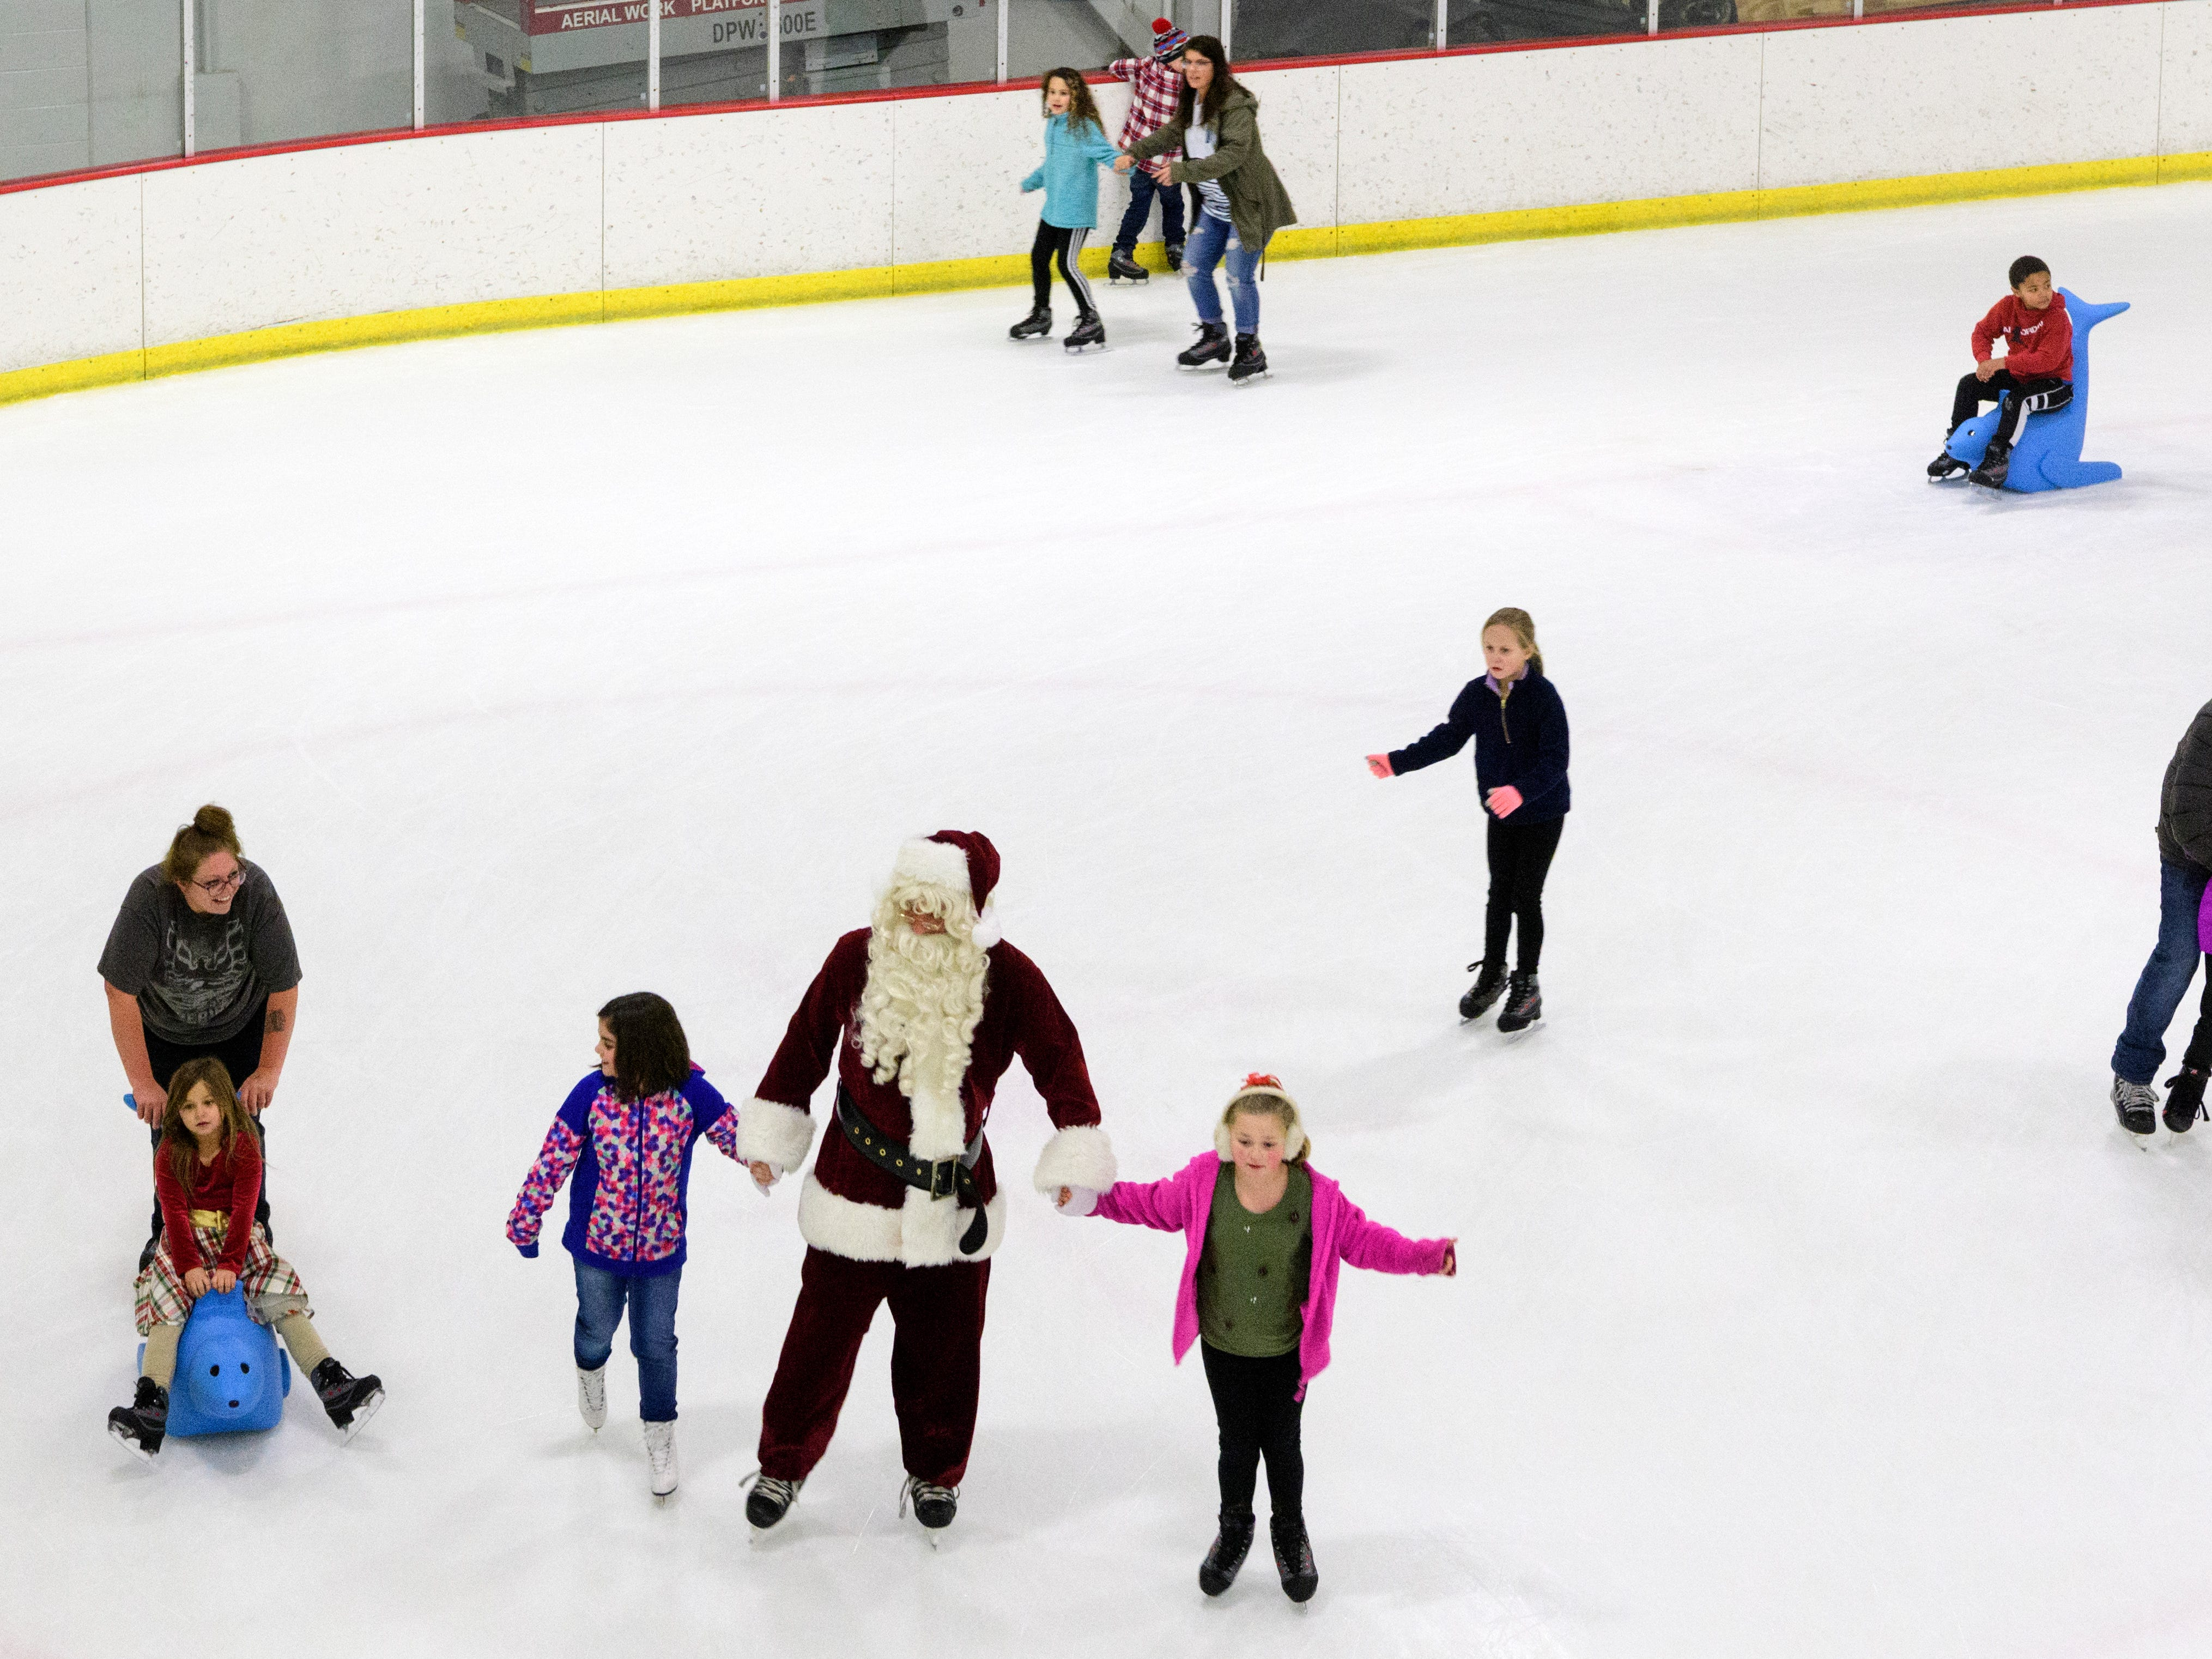 """Adelyn Ward, left, and Calea Reynolds, right, glide past other ice skaters as they hold hands with Santa during the ninth annual """"Skate with Santa"""" event at Swonder Ice Arena in Evansville, Ind., Sunday, Dec. 16, 2018. A portion the event's proceeds were donated to Autism Evansville, a local non-profit resource center for families with children on the autistic spectrum."""